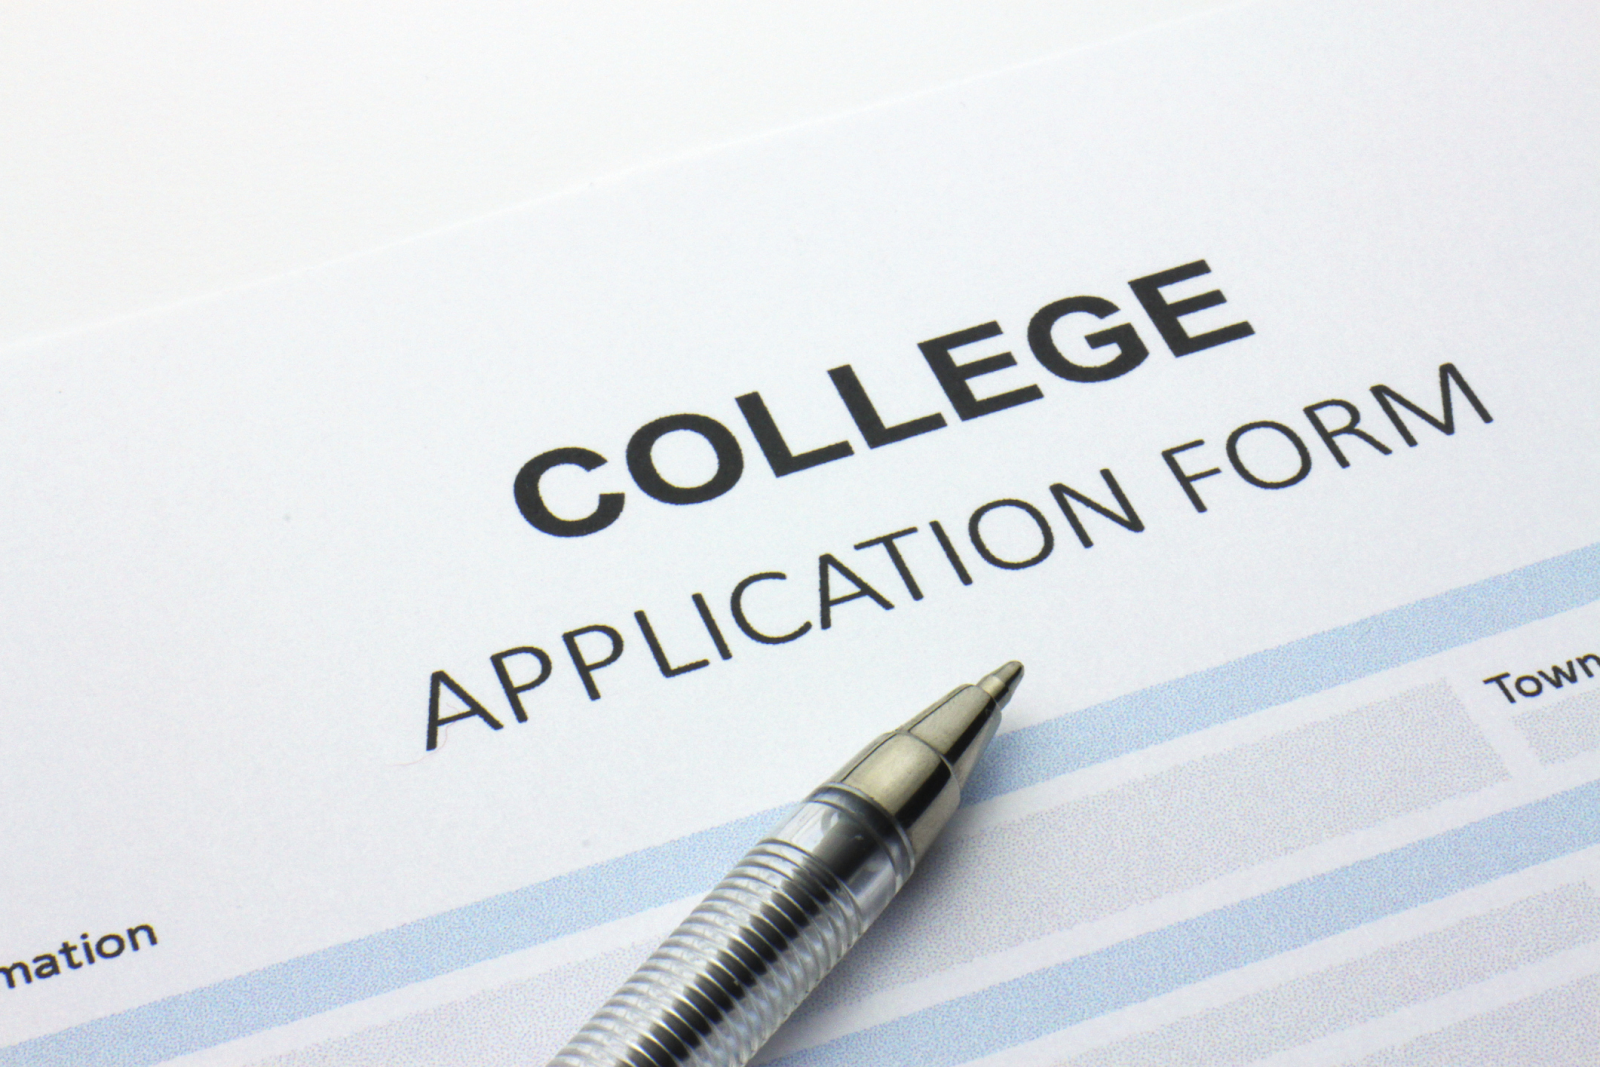 college application form with a pen sitting on top of it